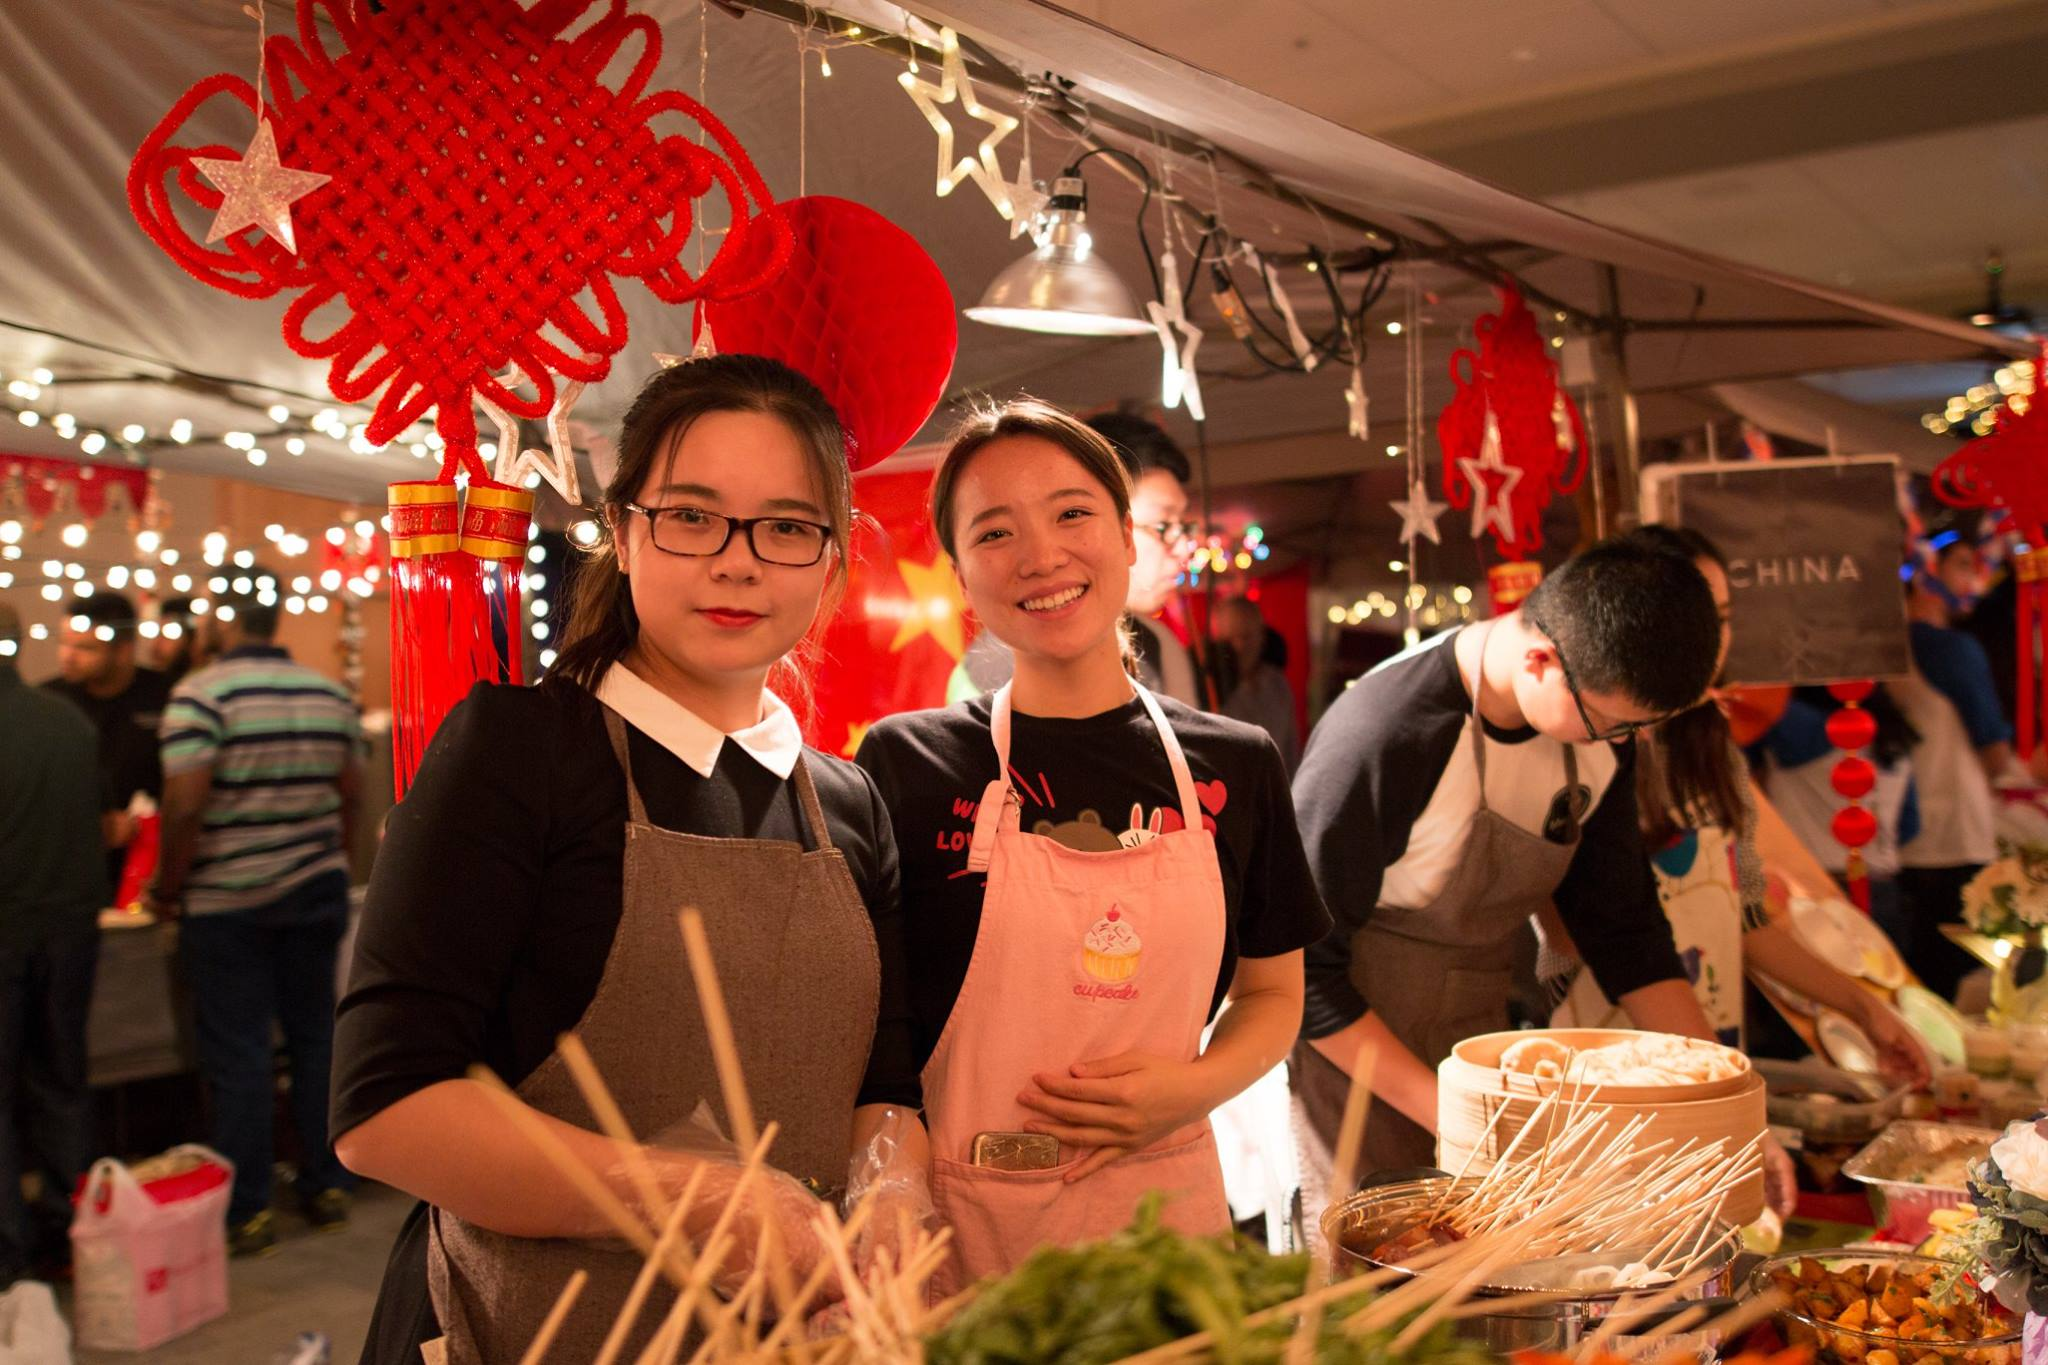 The China booth was a popular destination for food!